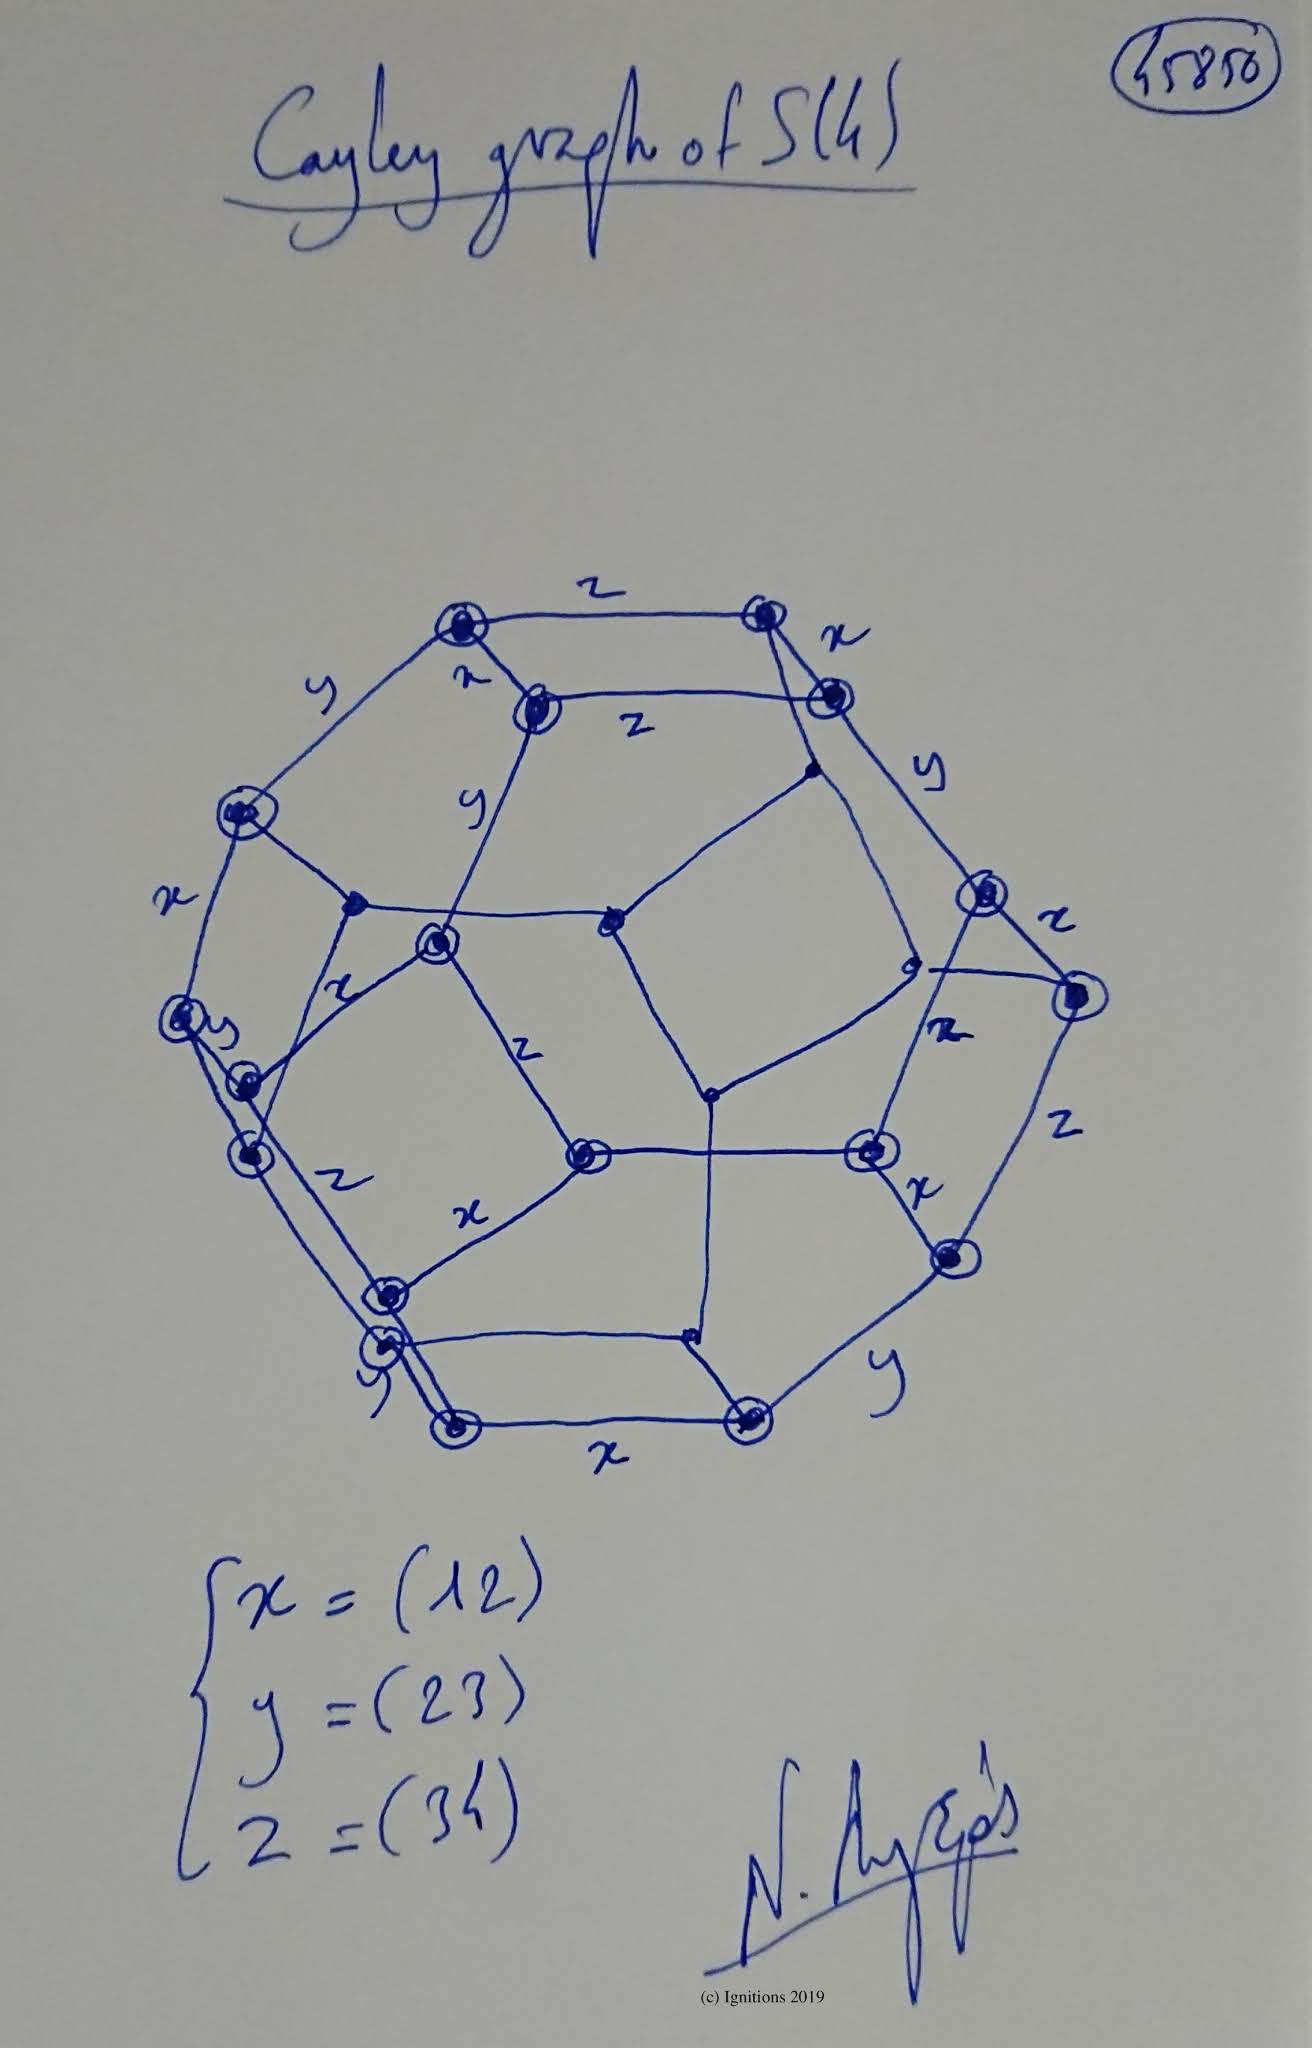 Cayley graph of S(4). (Dessin)